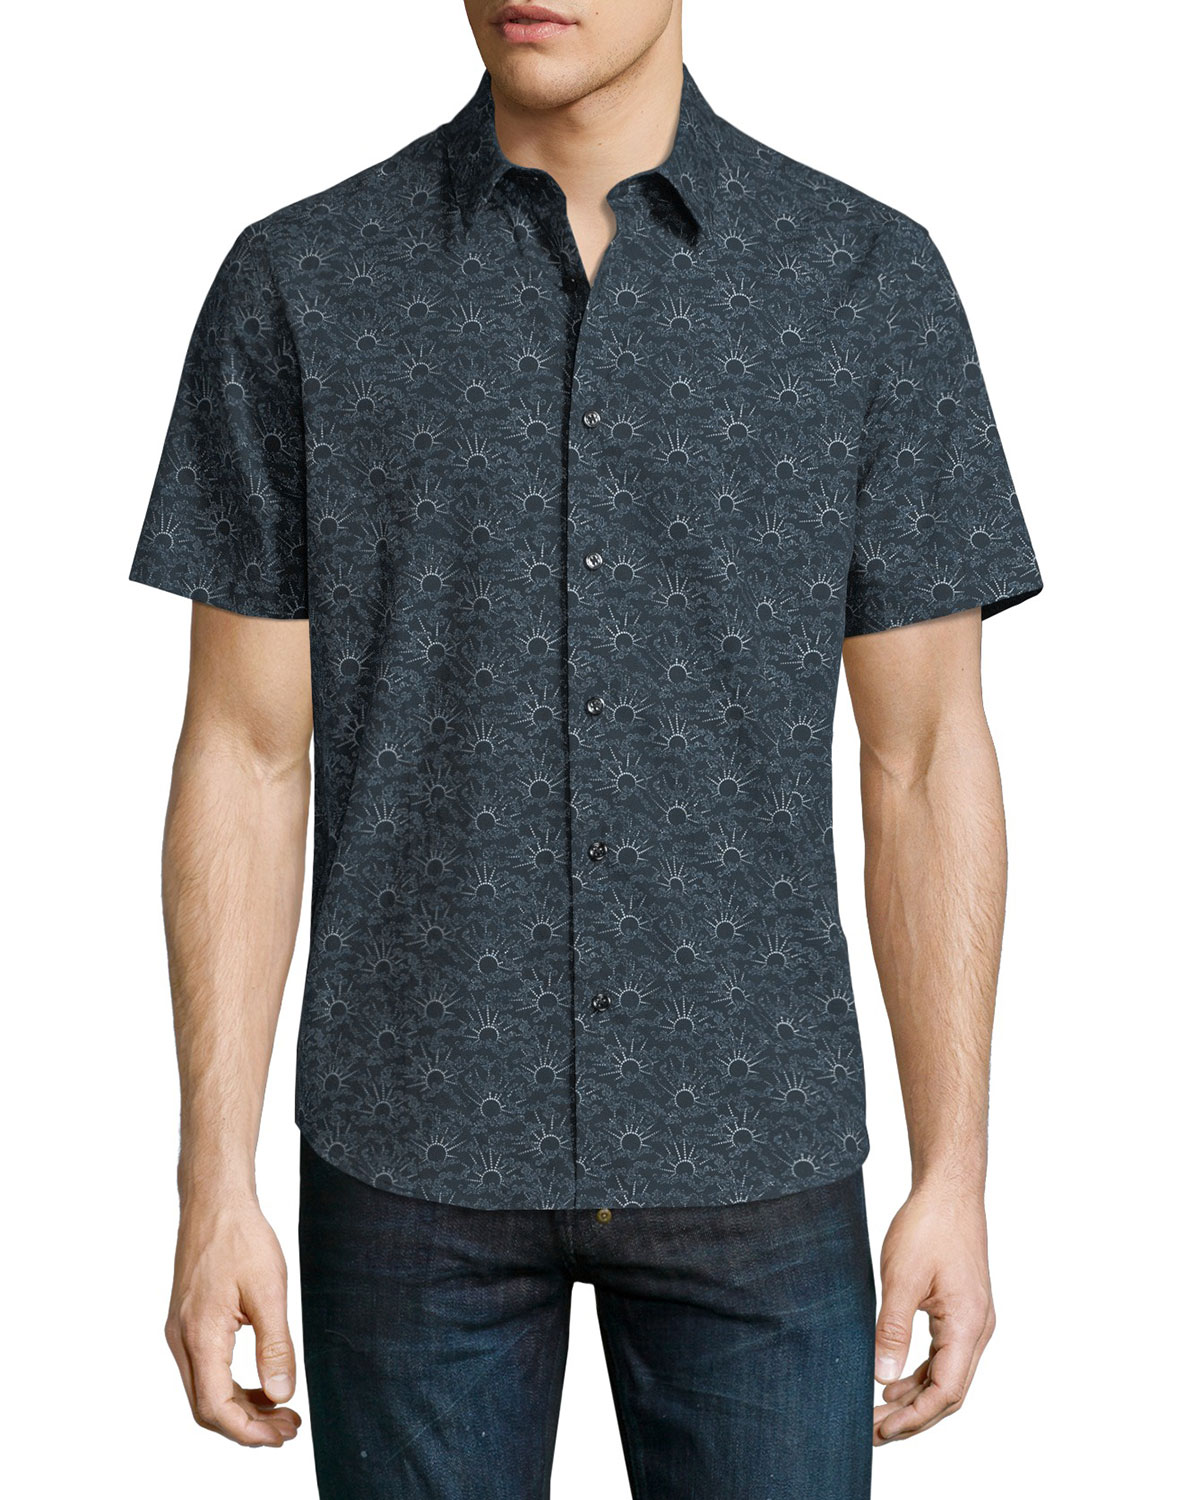 Nikko Printed Short-Sleeve Shirt